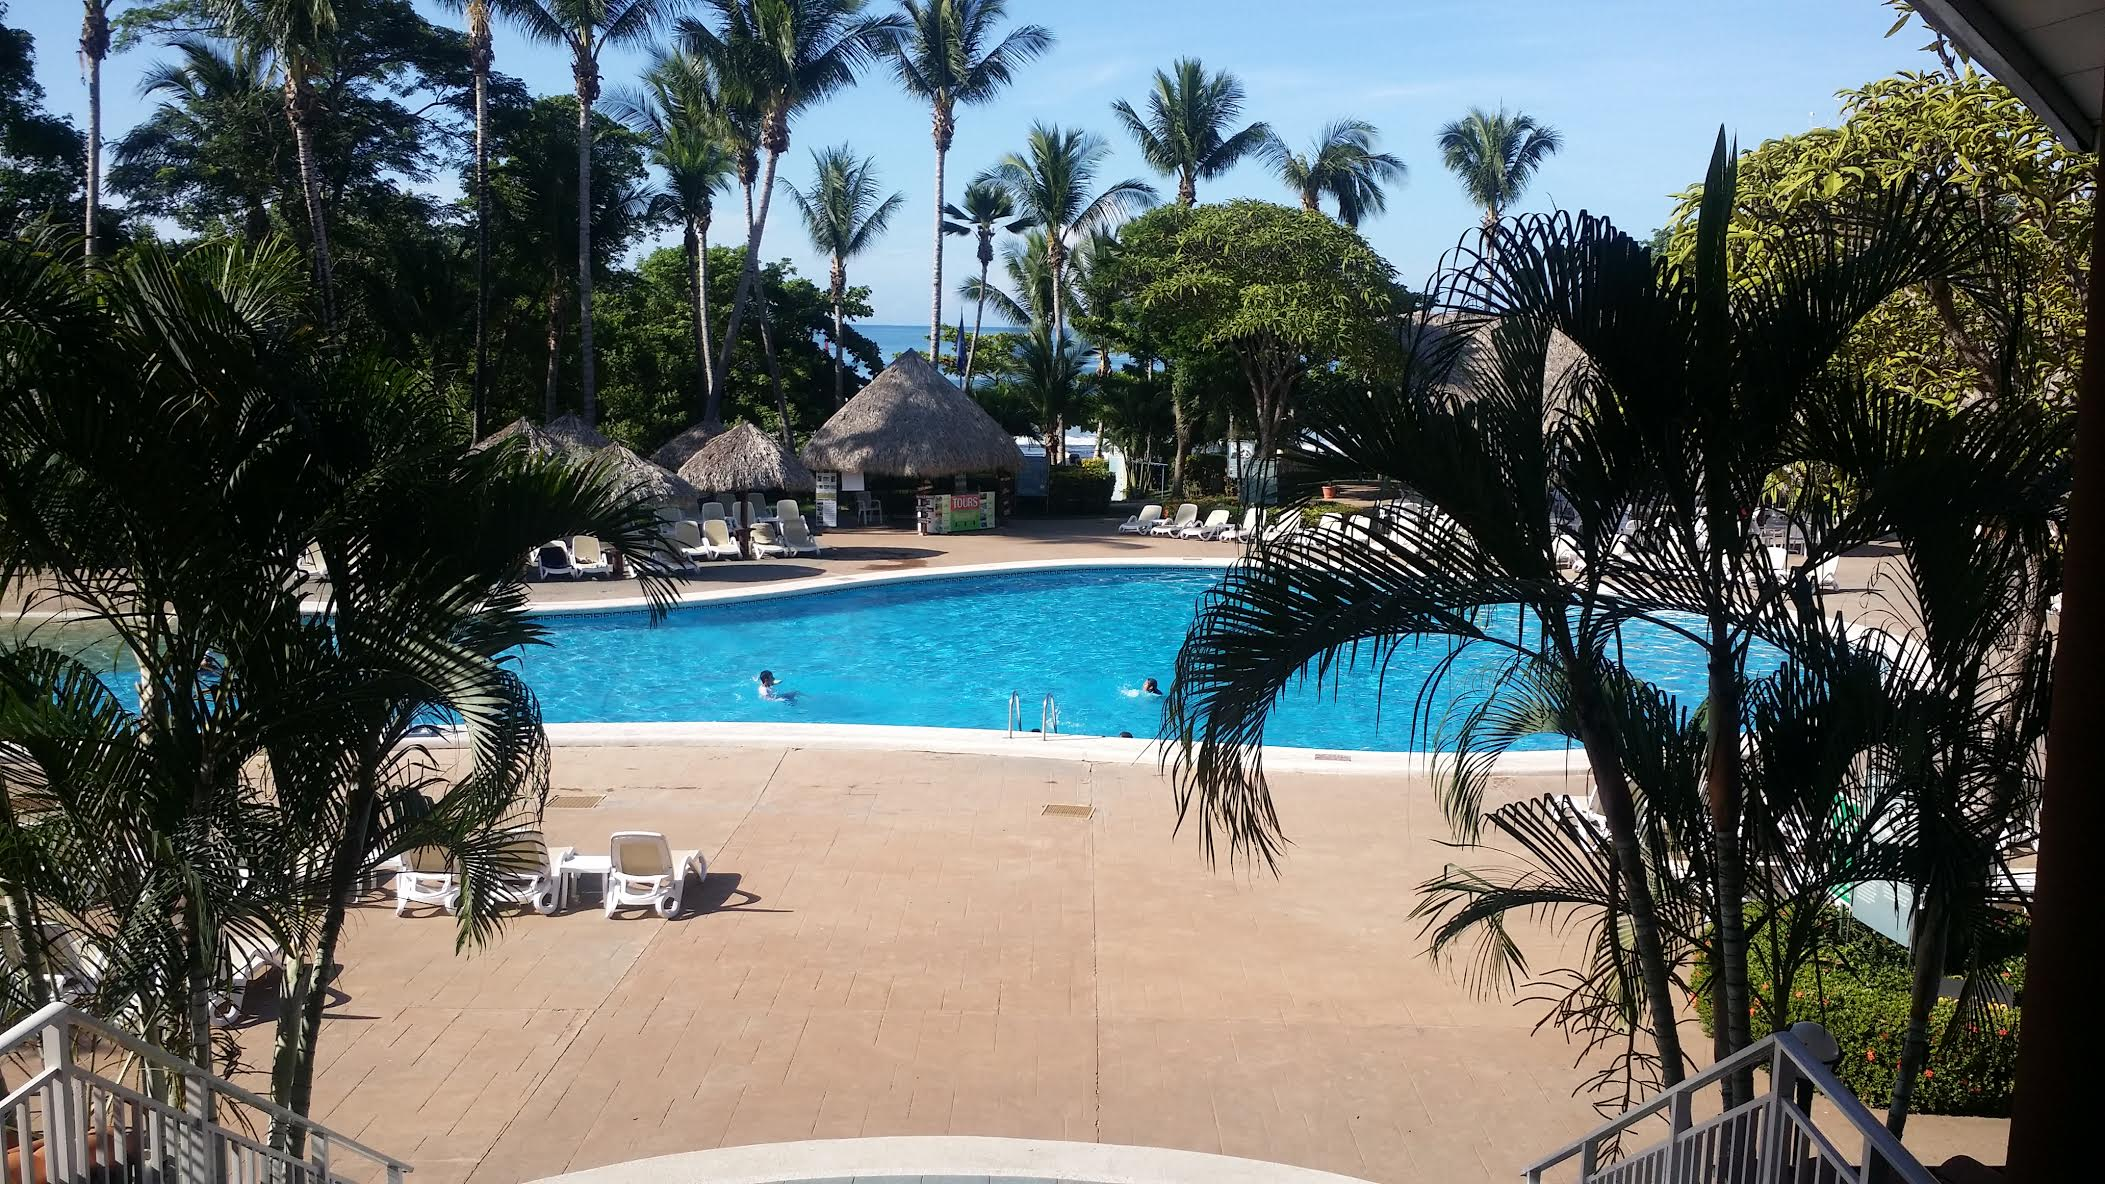 Howler Monkeys Would Frequent the Trees in the Back of the Barcelo Hotel in Tamarindo.